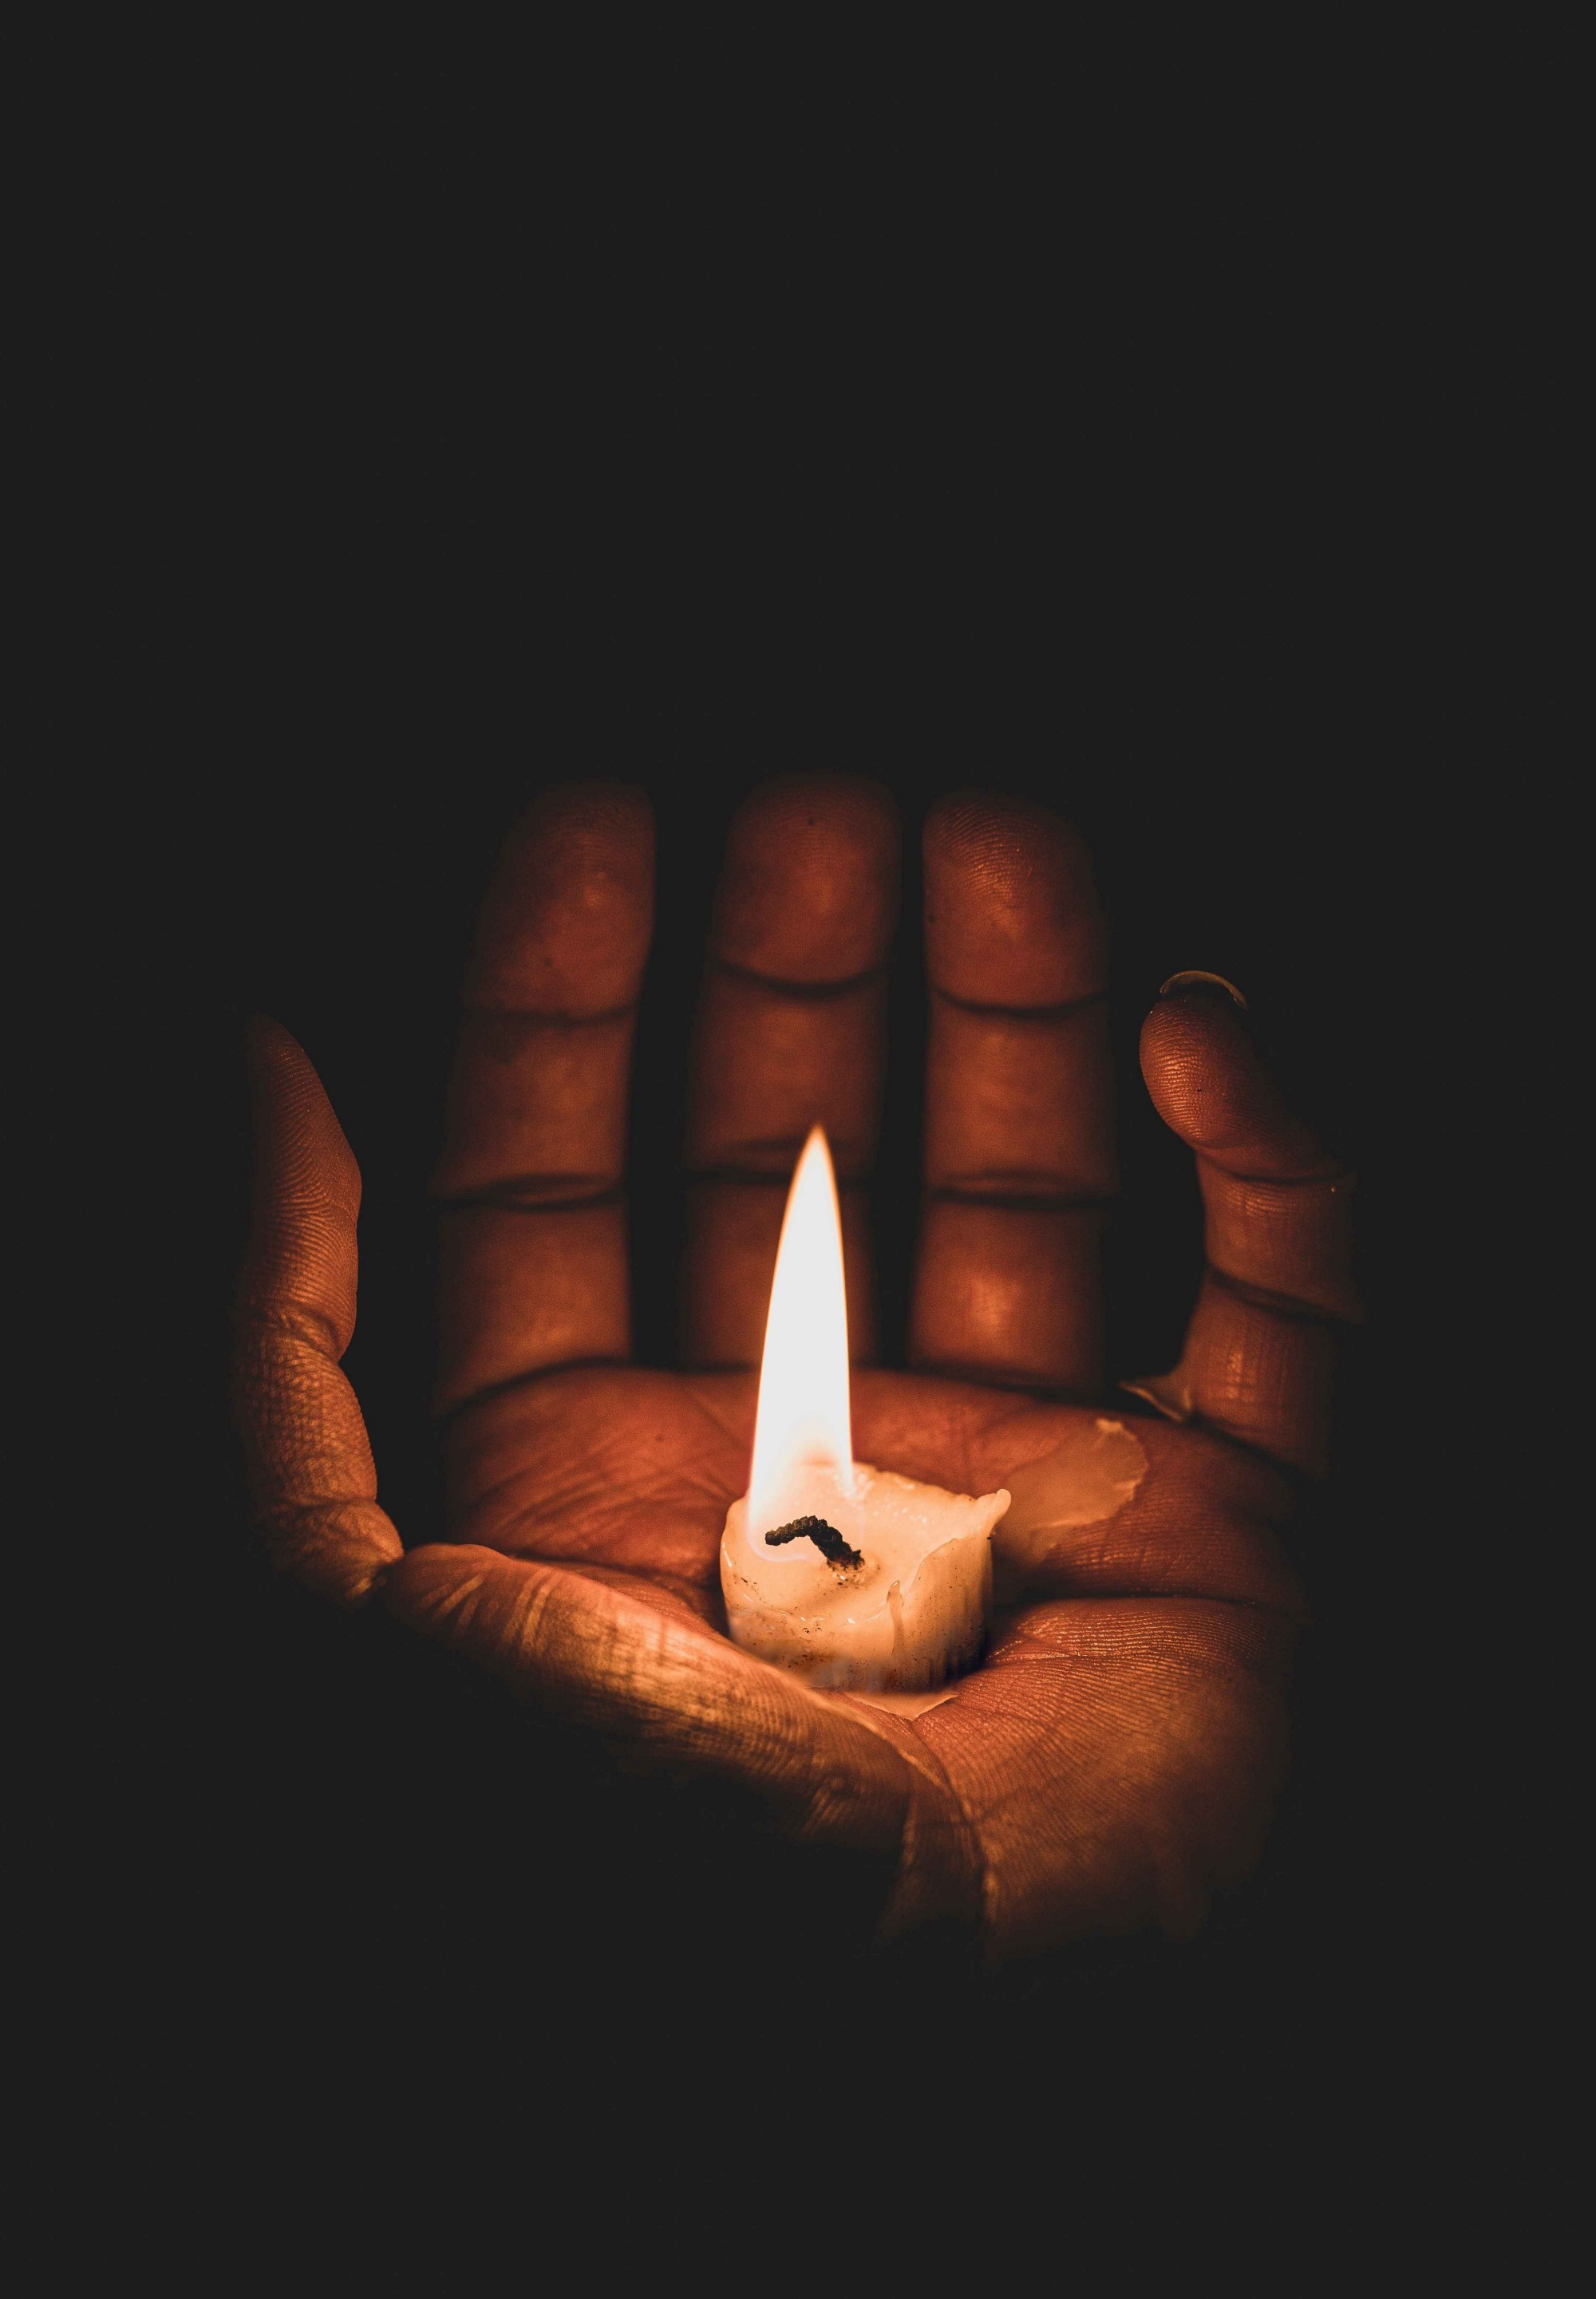 Nearly burned-out candle held on a person's open palm.